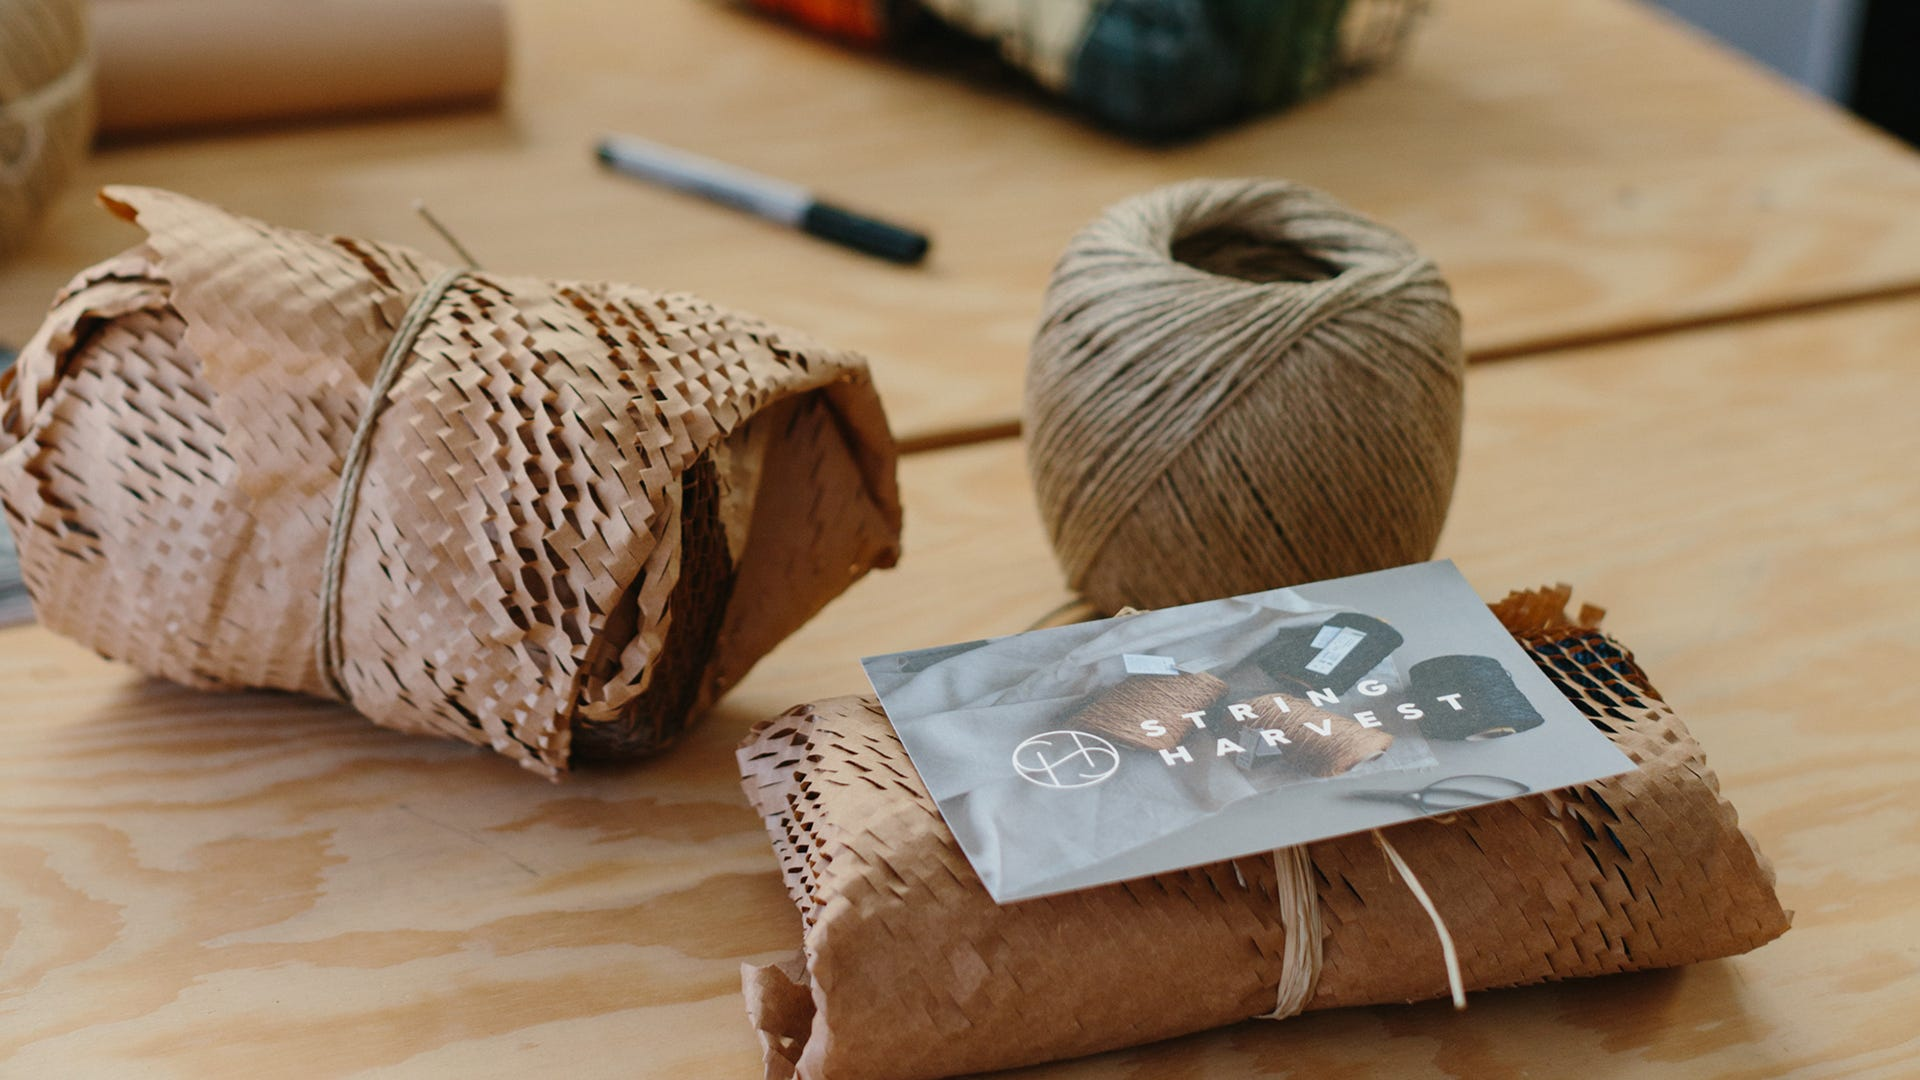 String Harvest products wrapped in Geami